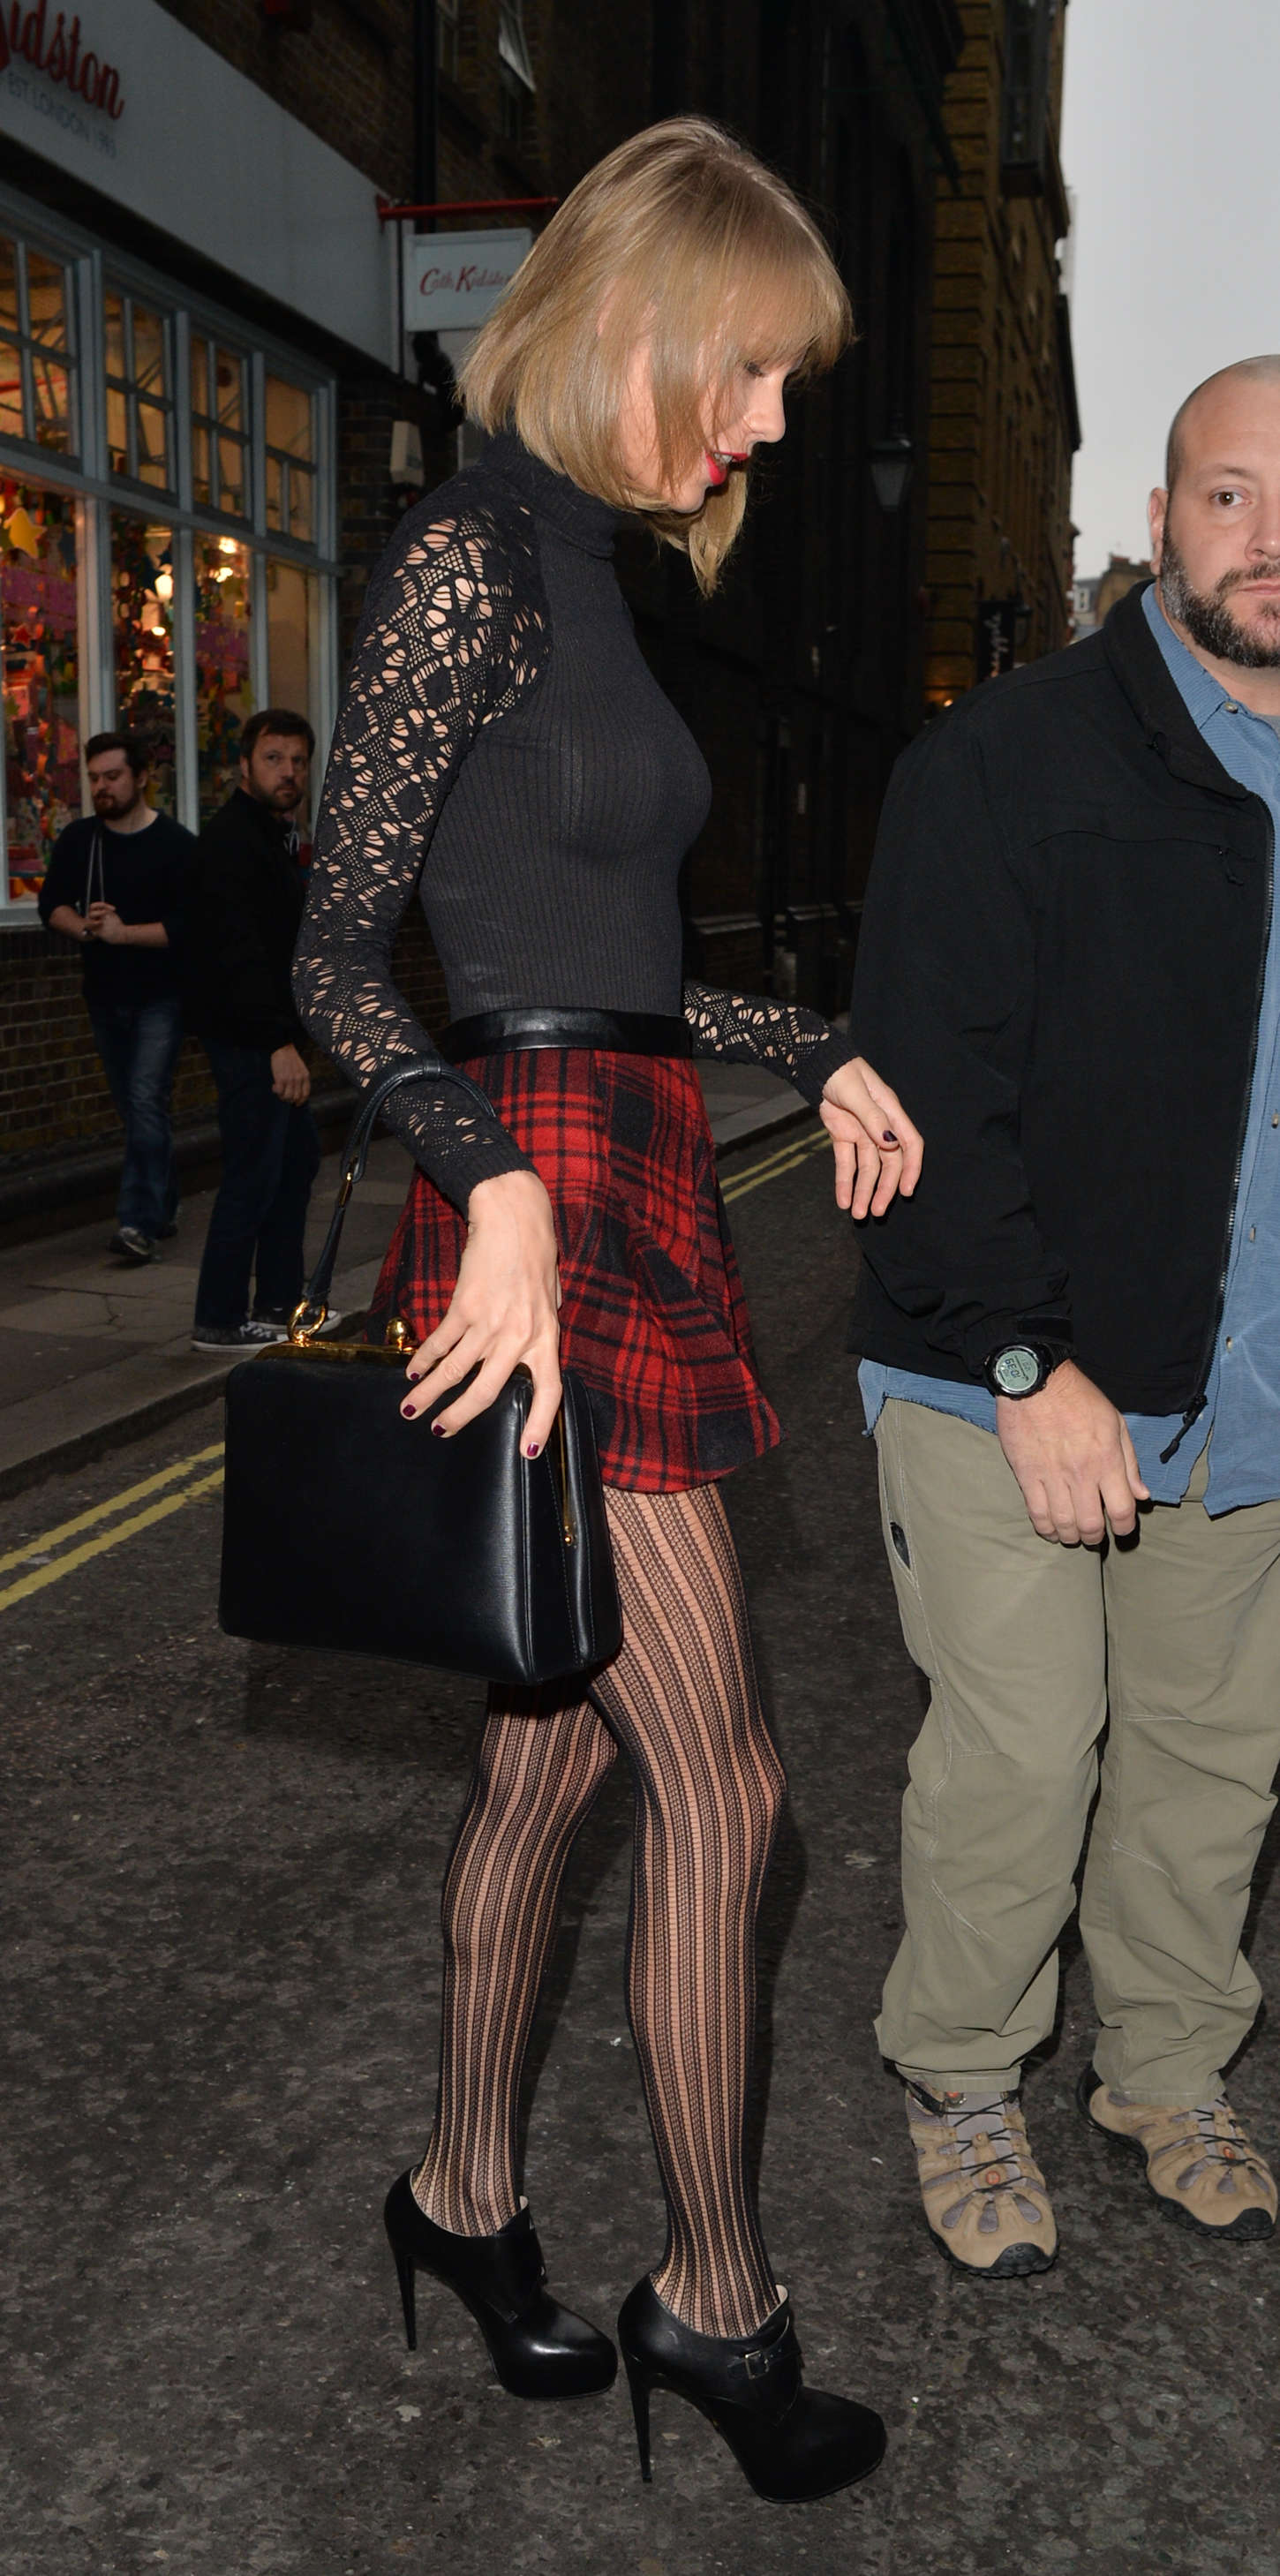 Taylor Swift 2014 : Taylor Swift in Mini Skirt at Cath Kidston -21